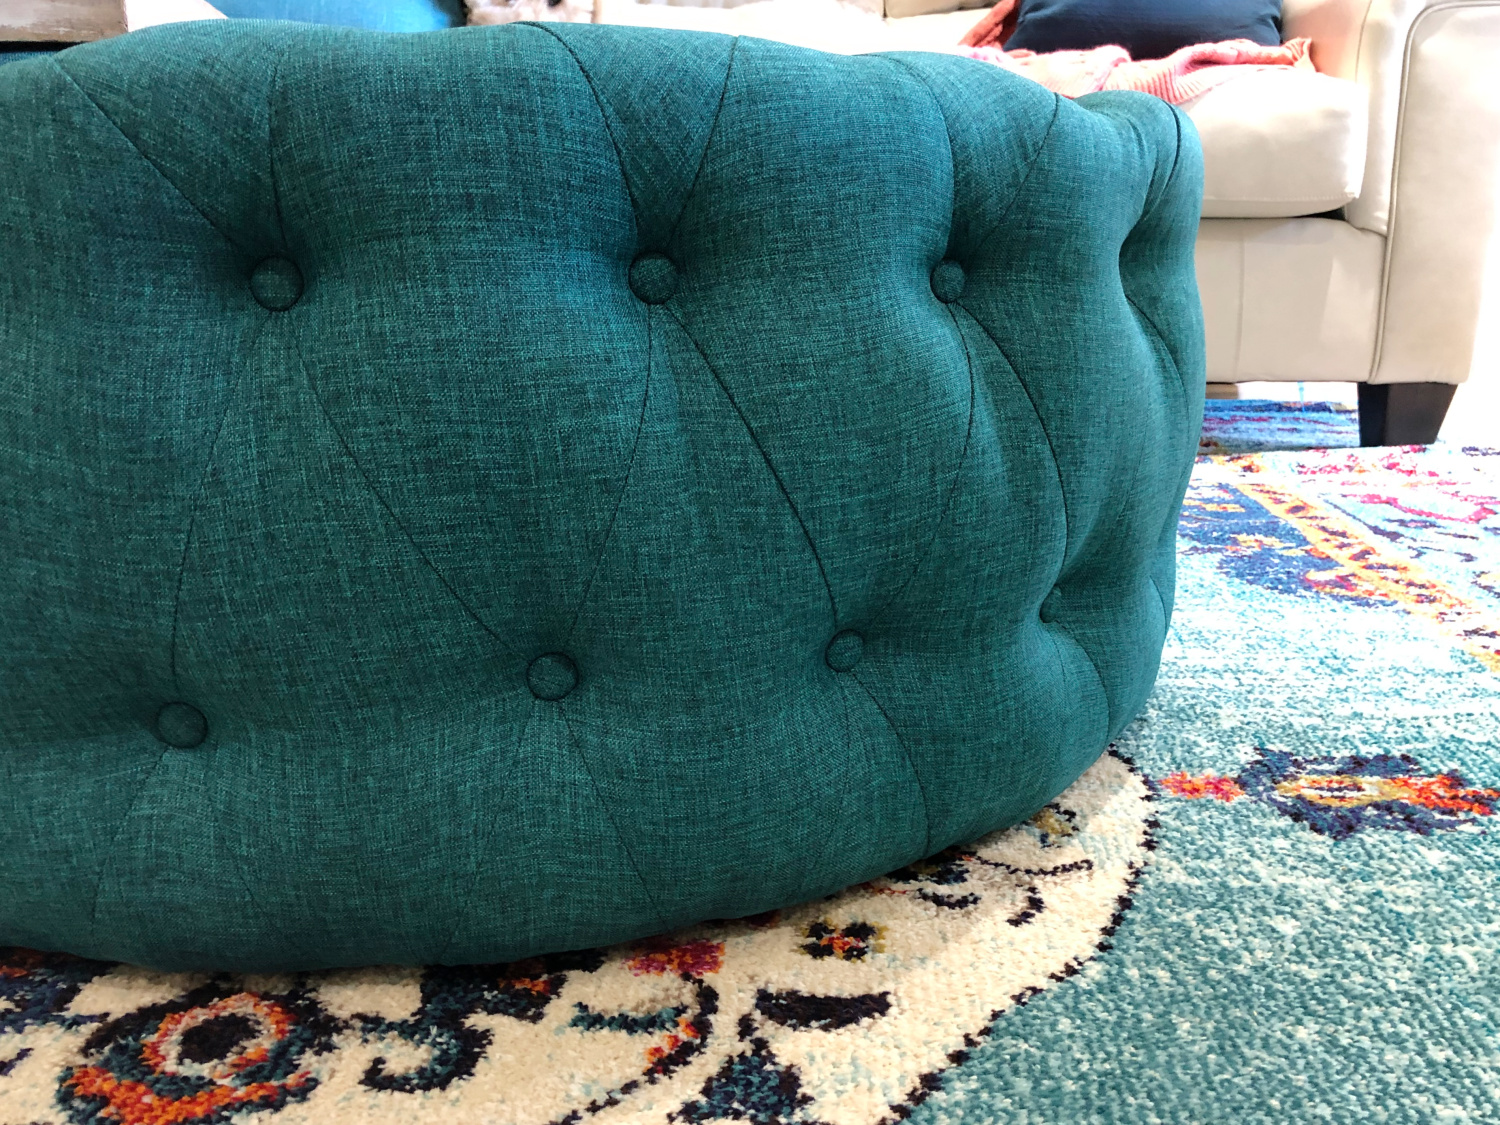 Round Teal Ottoman - TEAL LIVING ROOM DECOR - LAKE CONDO or Beach